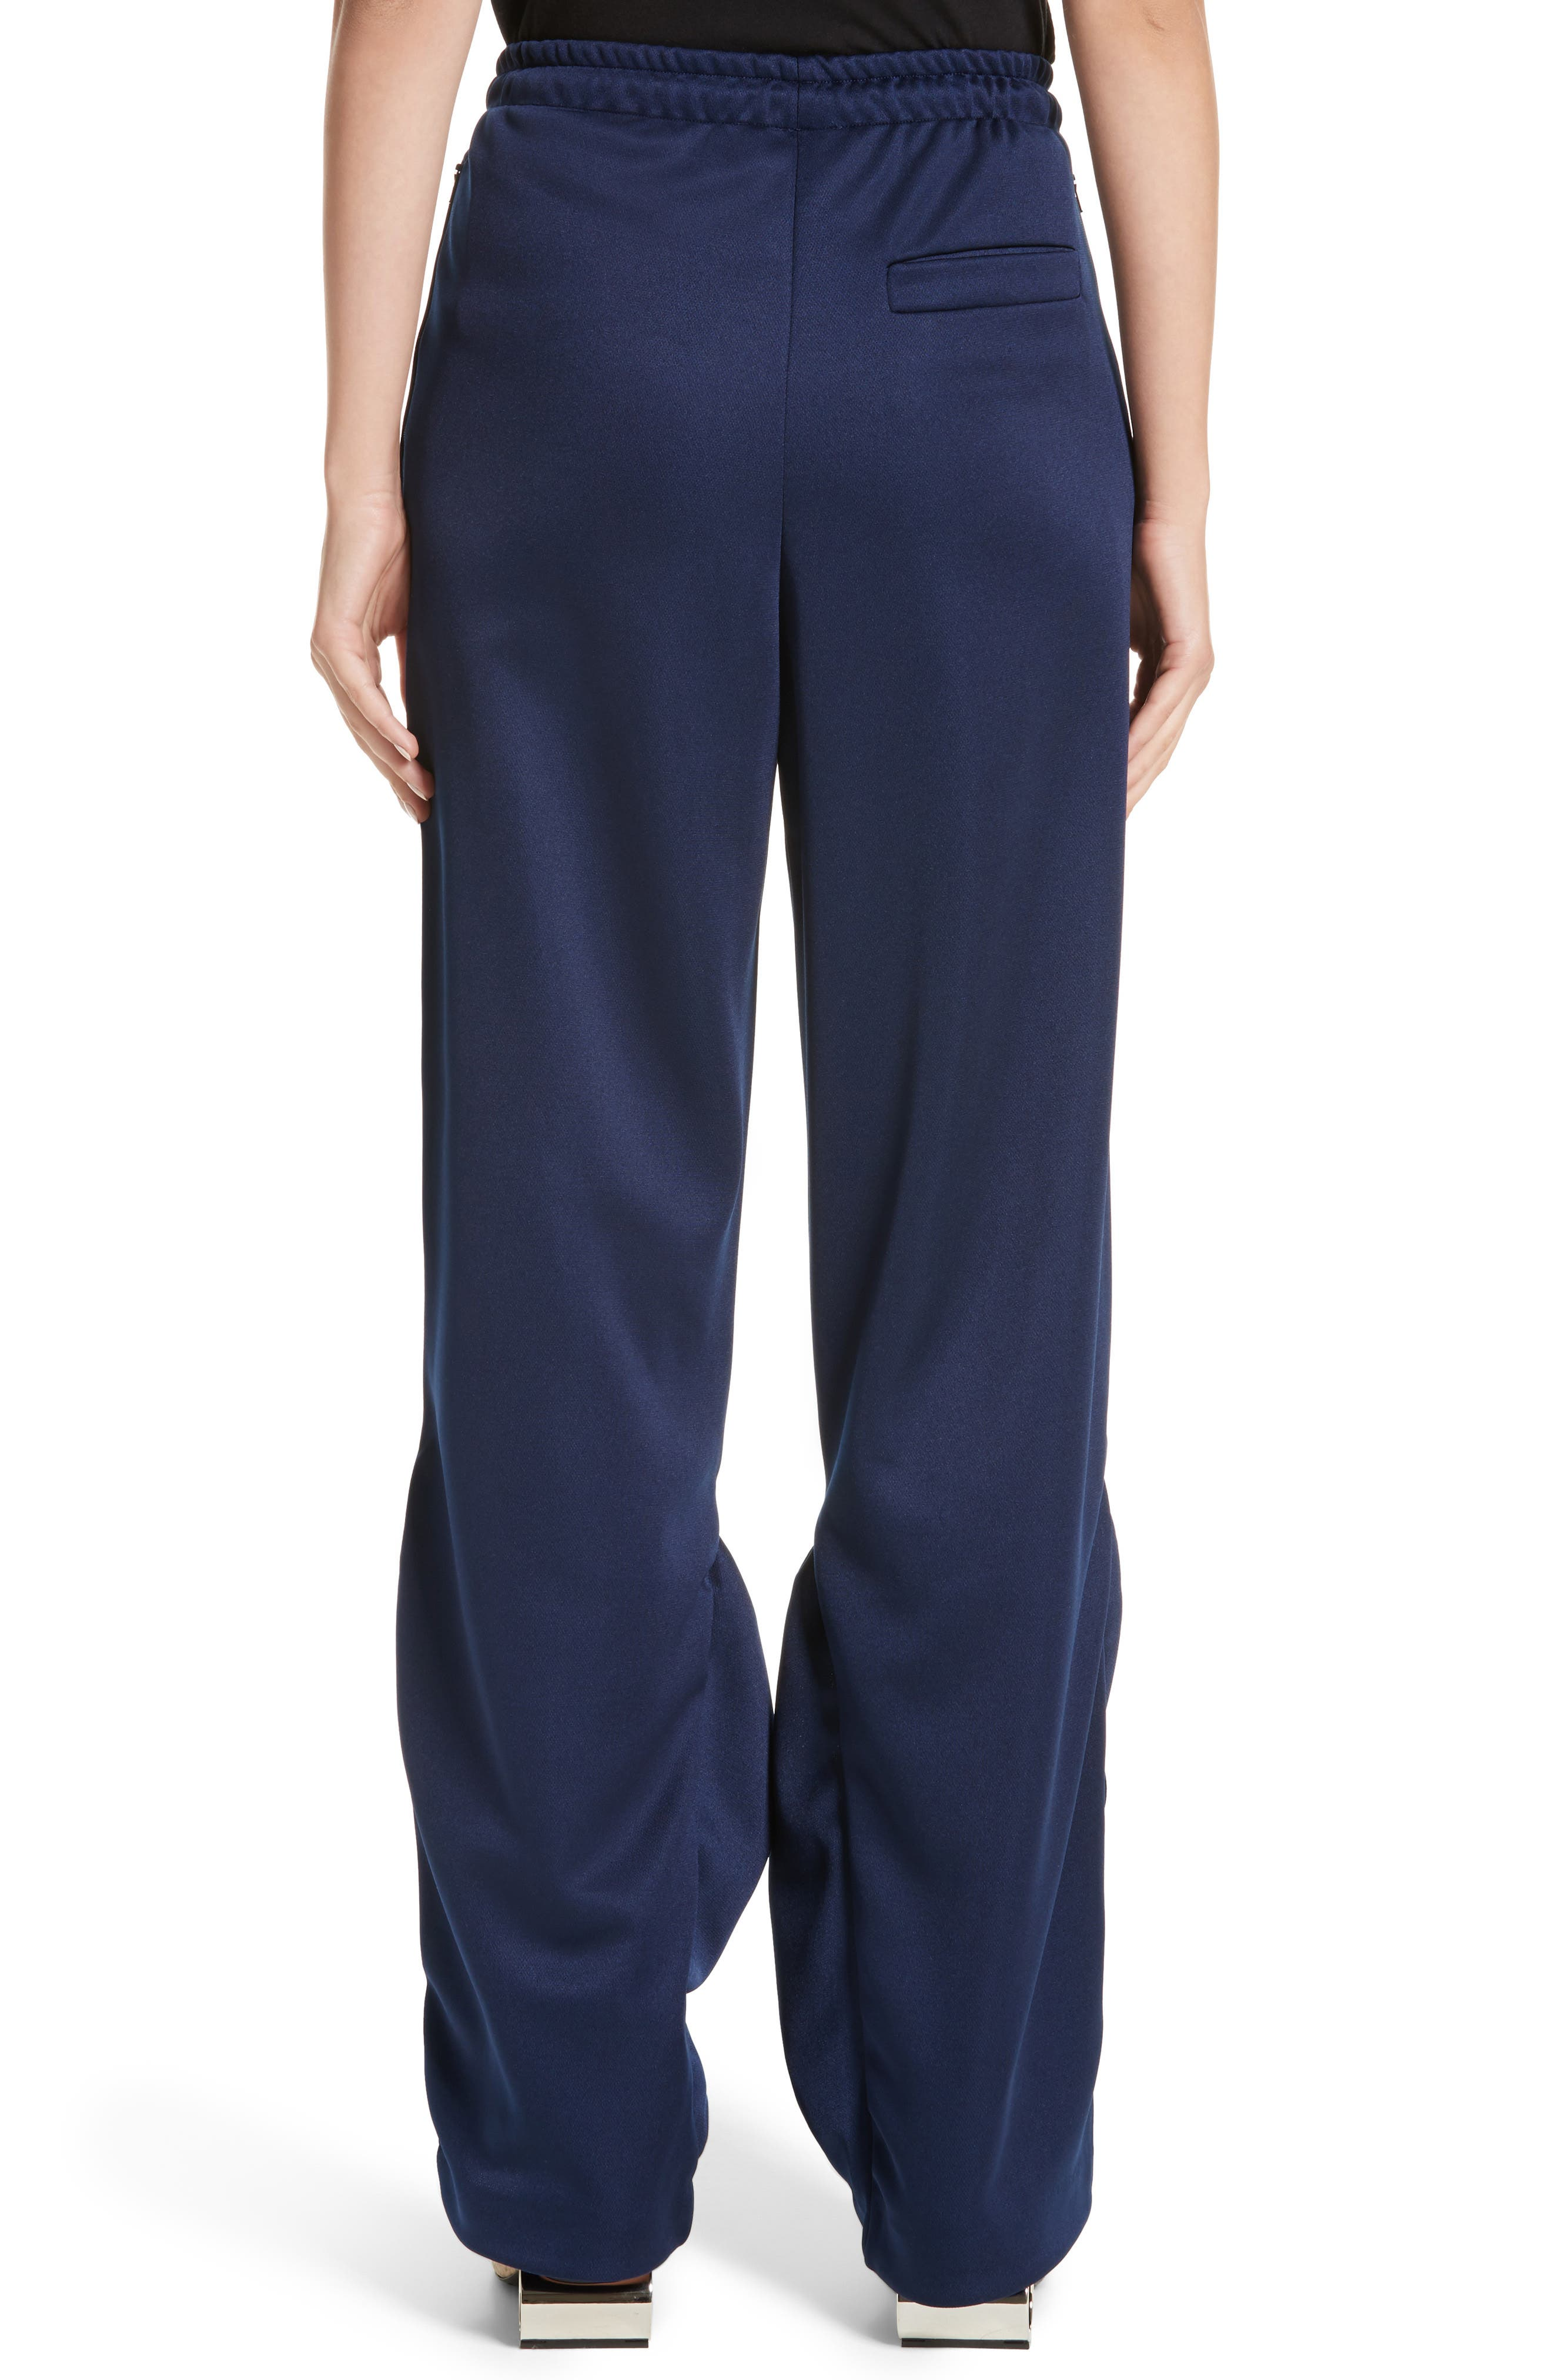 J.W.ANDERSON Jersey Pocket Hem Trousers,                             Alternate thumbnail 2, color,                             400